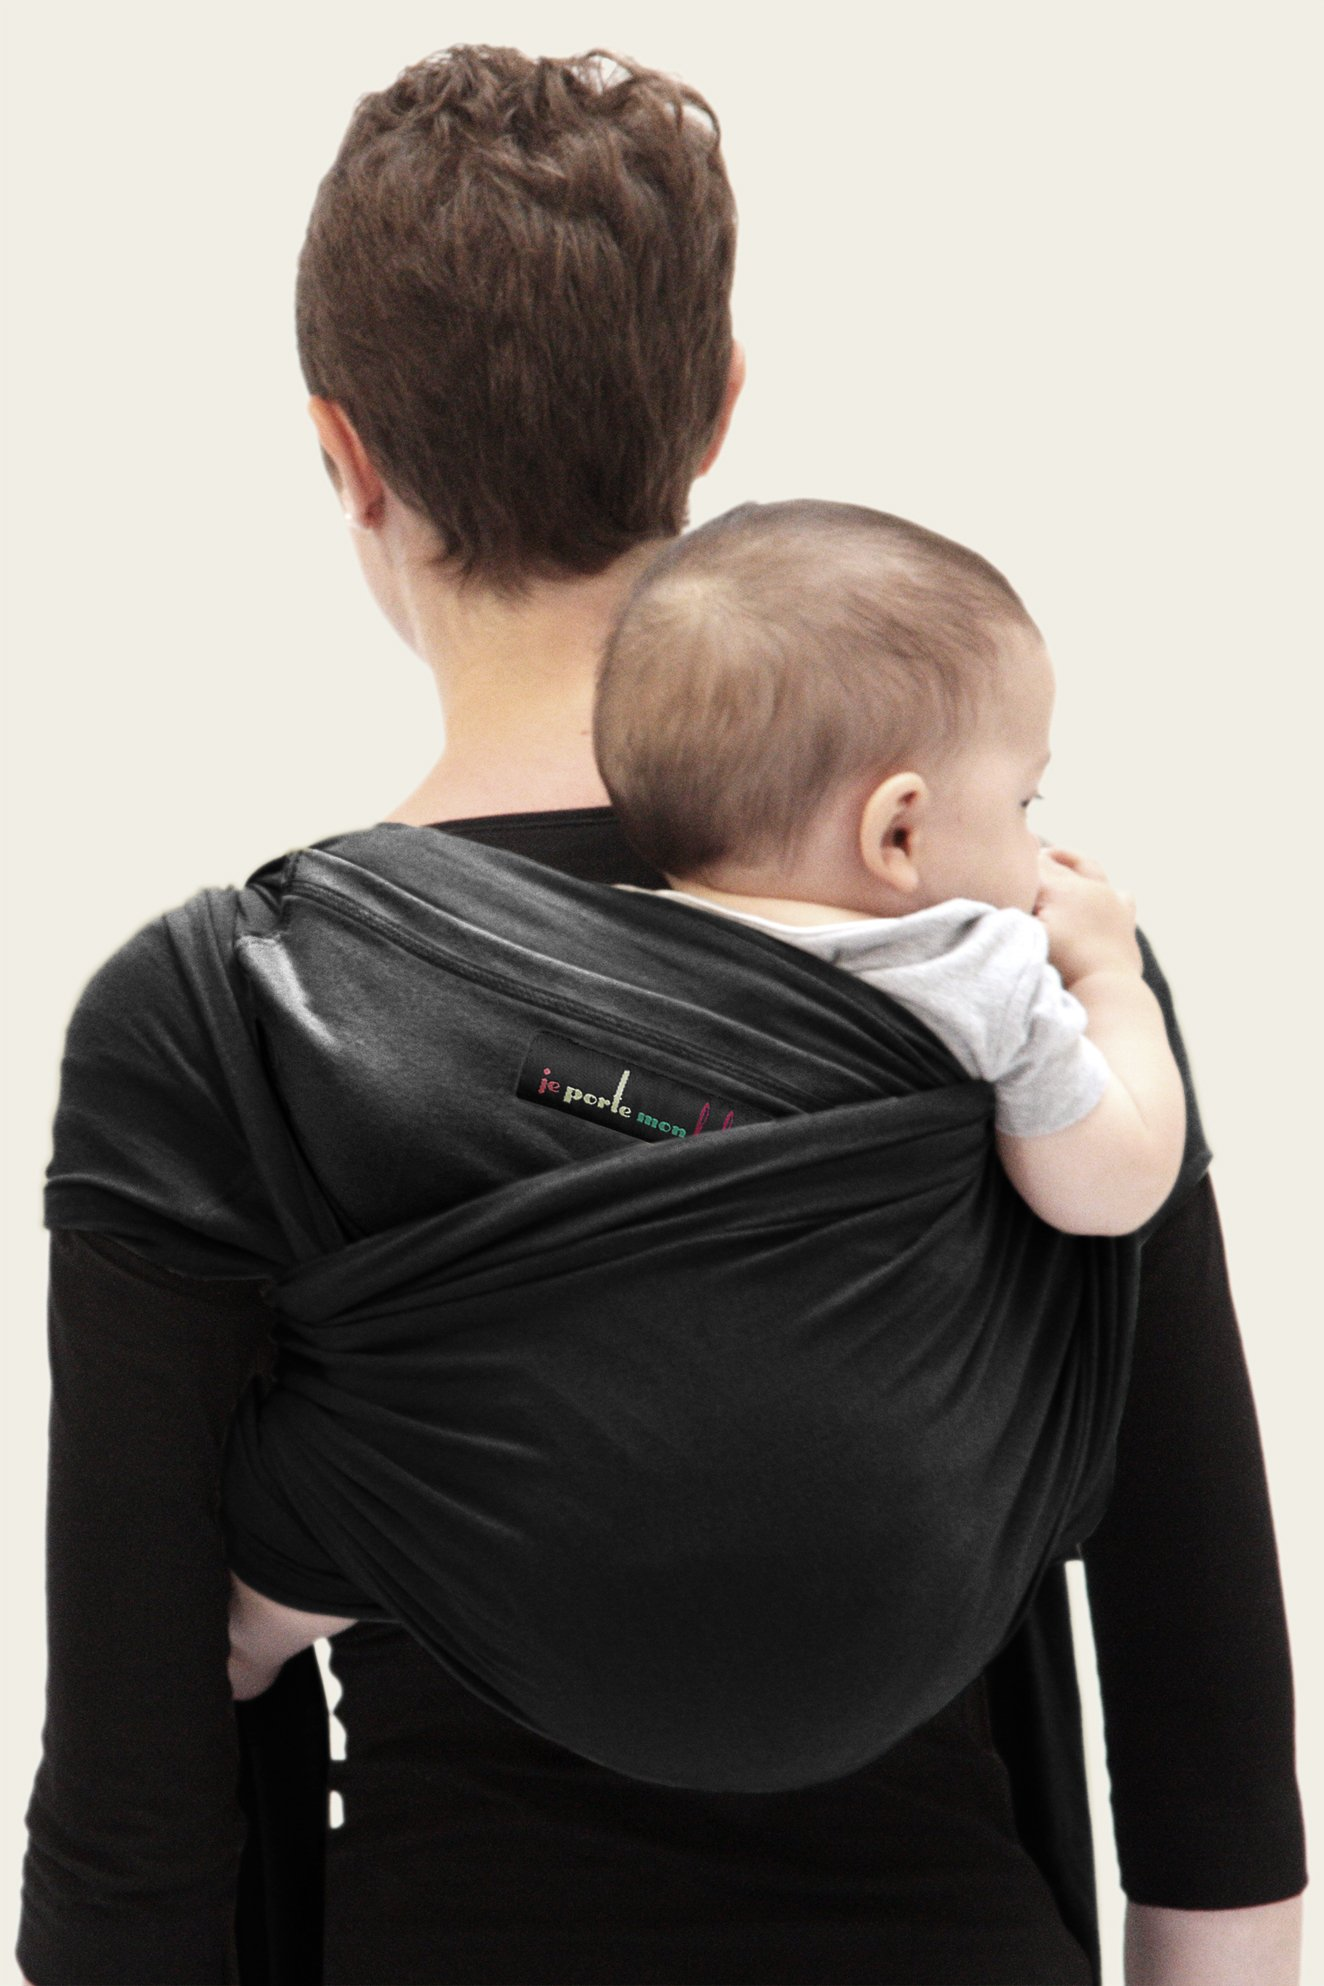 Je Porte Mon Bébé L'Originale Baby Sling Je Porte Mon Bébé High Quality Elastic Baby Carrier Dense, elastic and breathable material Great support, fits your baby's body like a second skin. 5